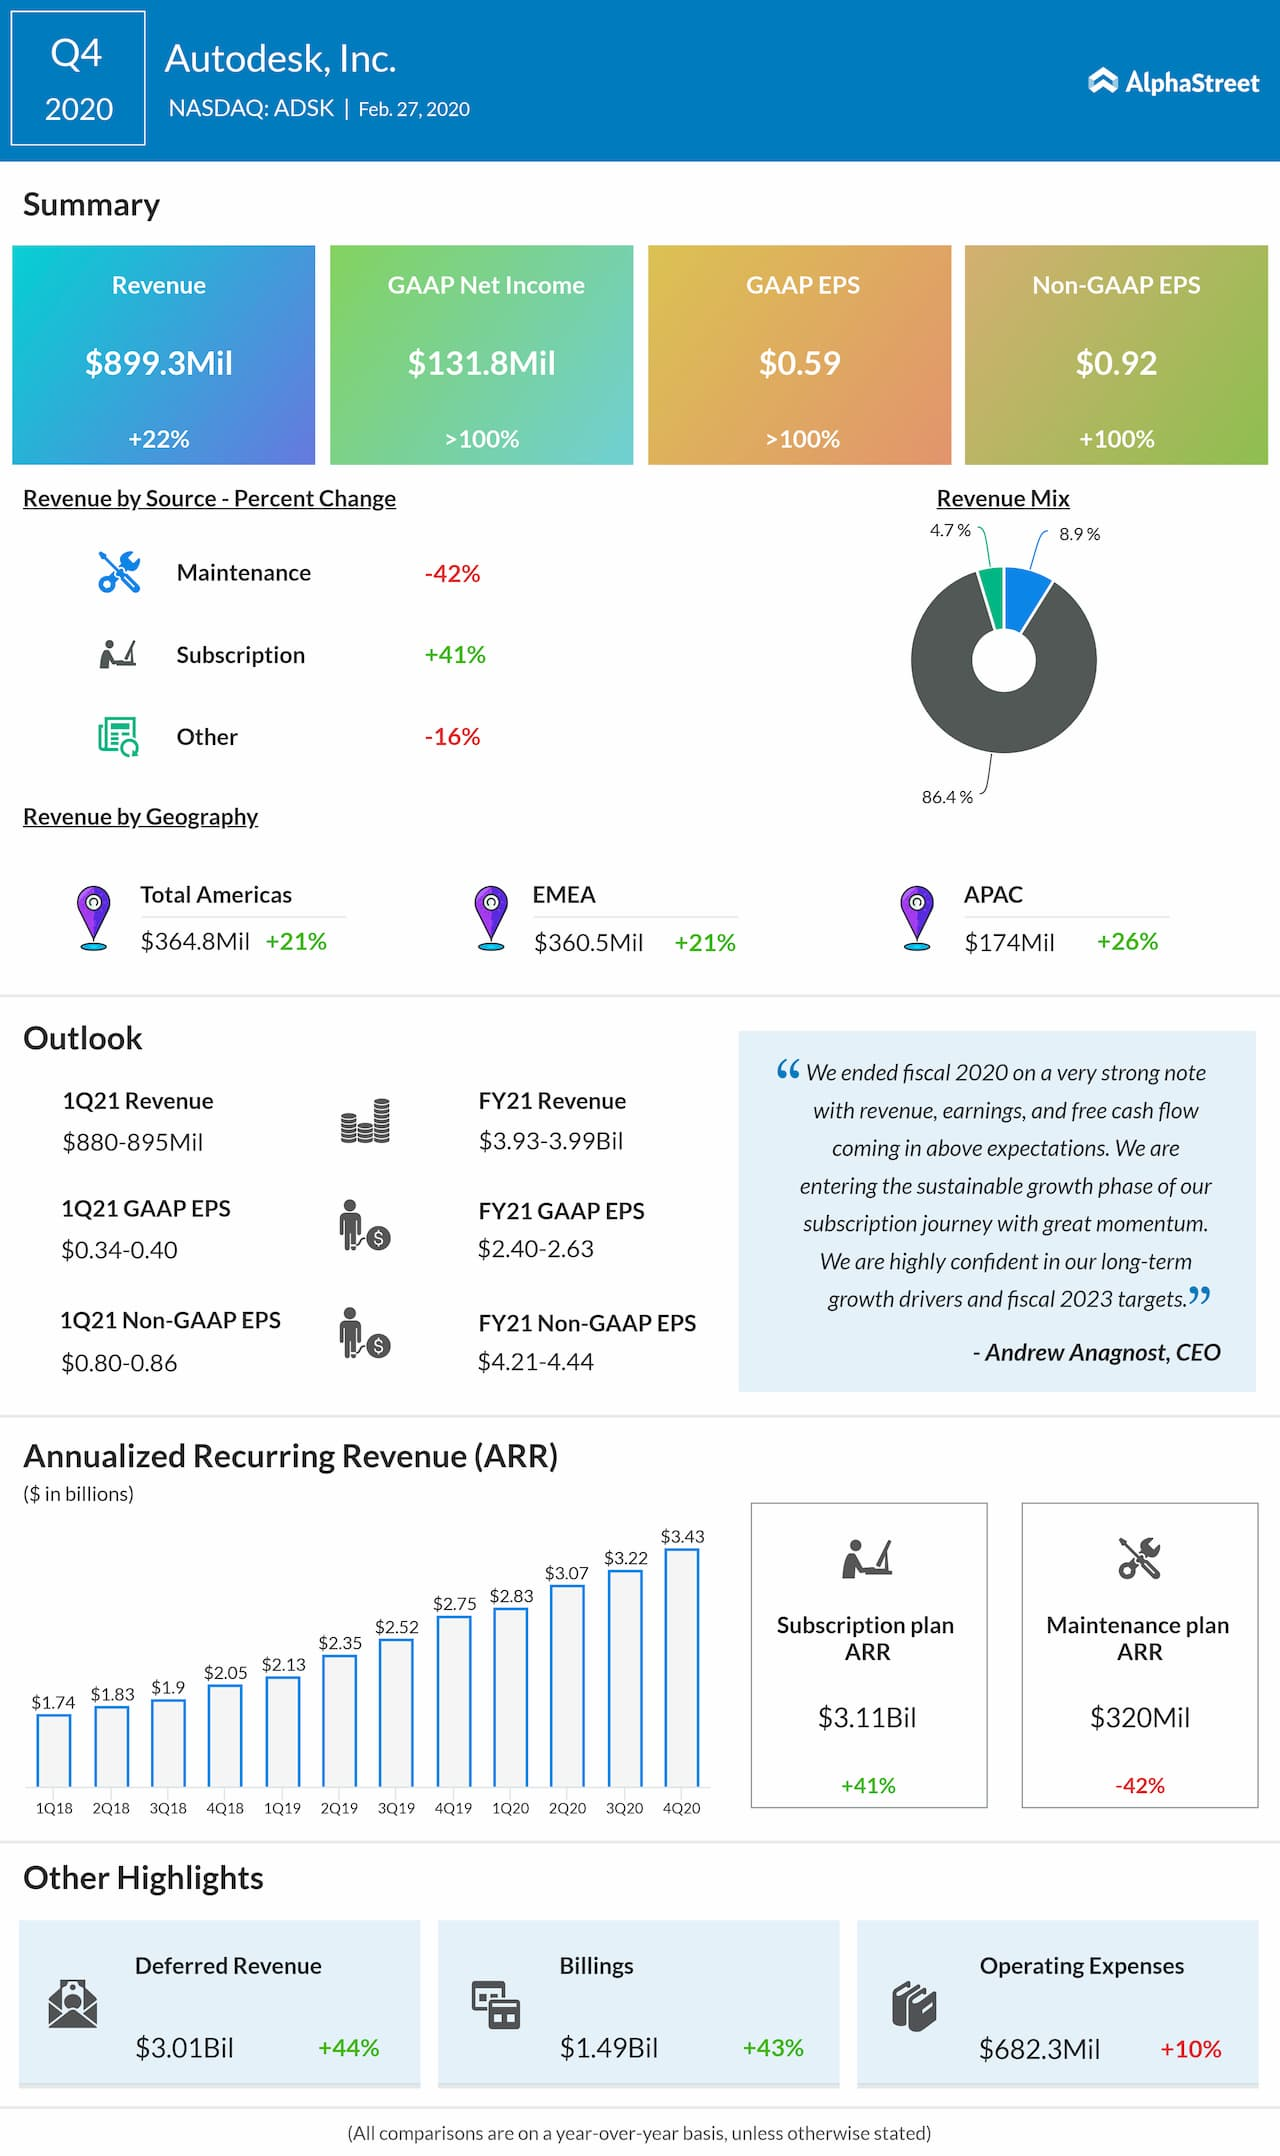 Autodesk (ADSK) Q4 2020 earnings snapshot